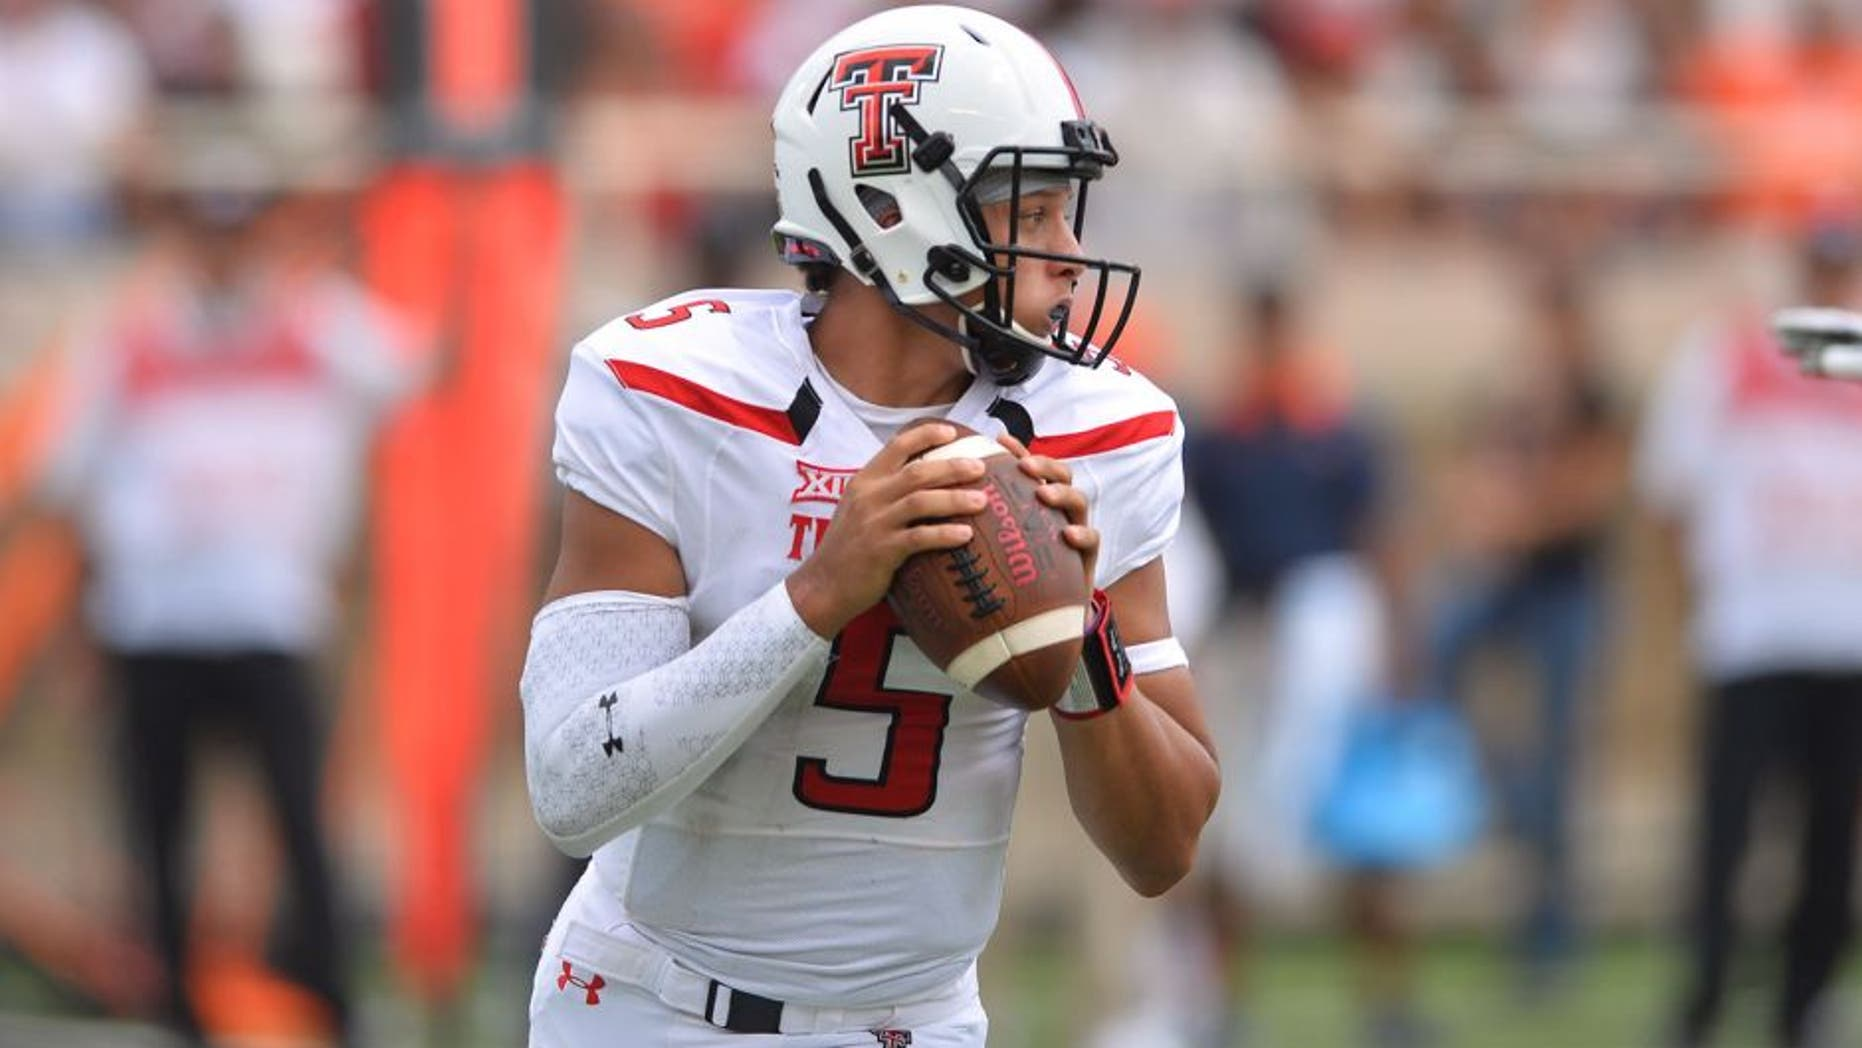 LUBBOCK, TX - SEPTEMBER 12: Patrick Mahomes #5 of the Texas Tech Red Raiders looks to pass during the game against the UTEP Miners on September 12, 2015 at Jones AT&T Stadium in Lubbock, Texas.Texas Tech won the game 69-20. (Photo by John Weast/Getty Images)